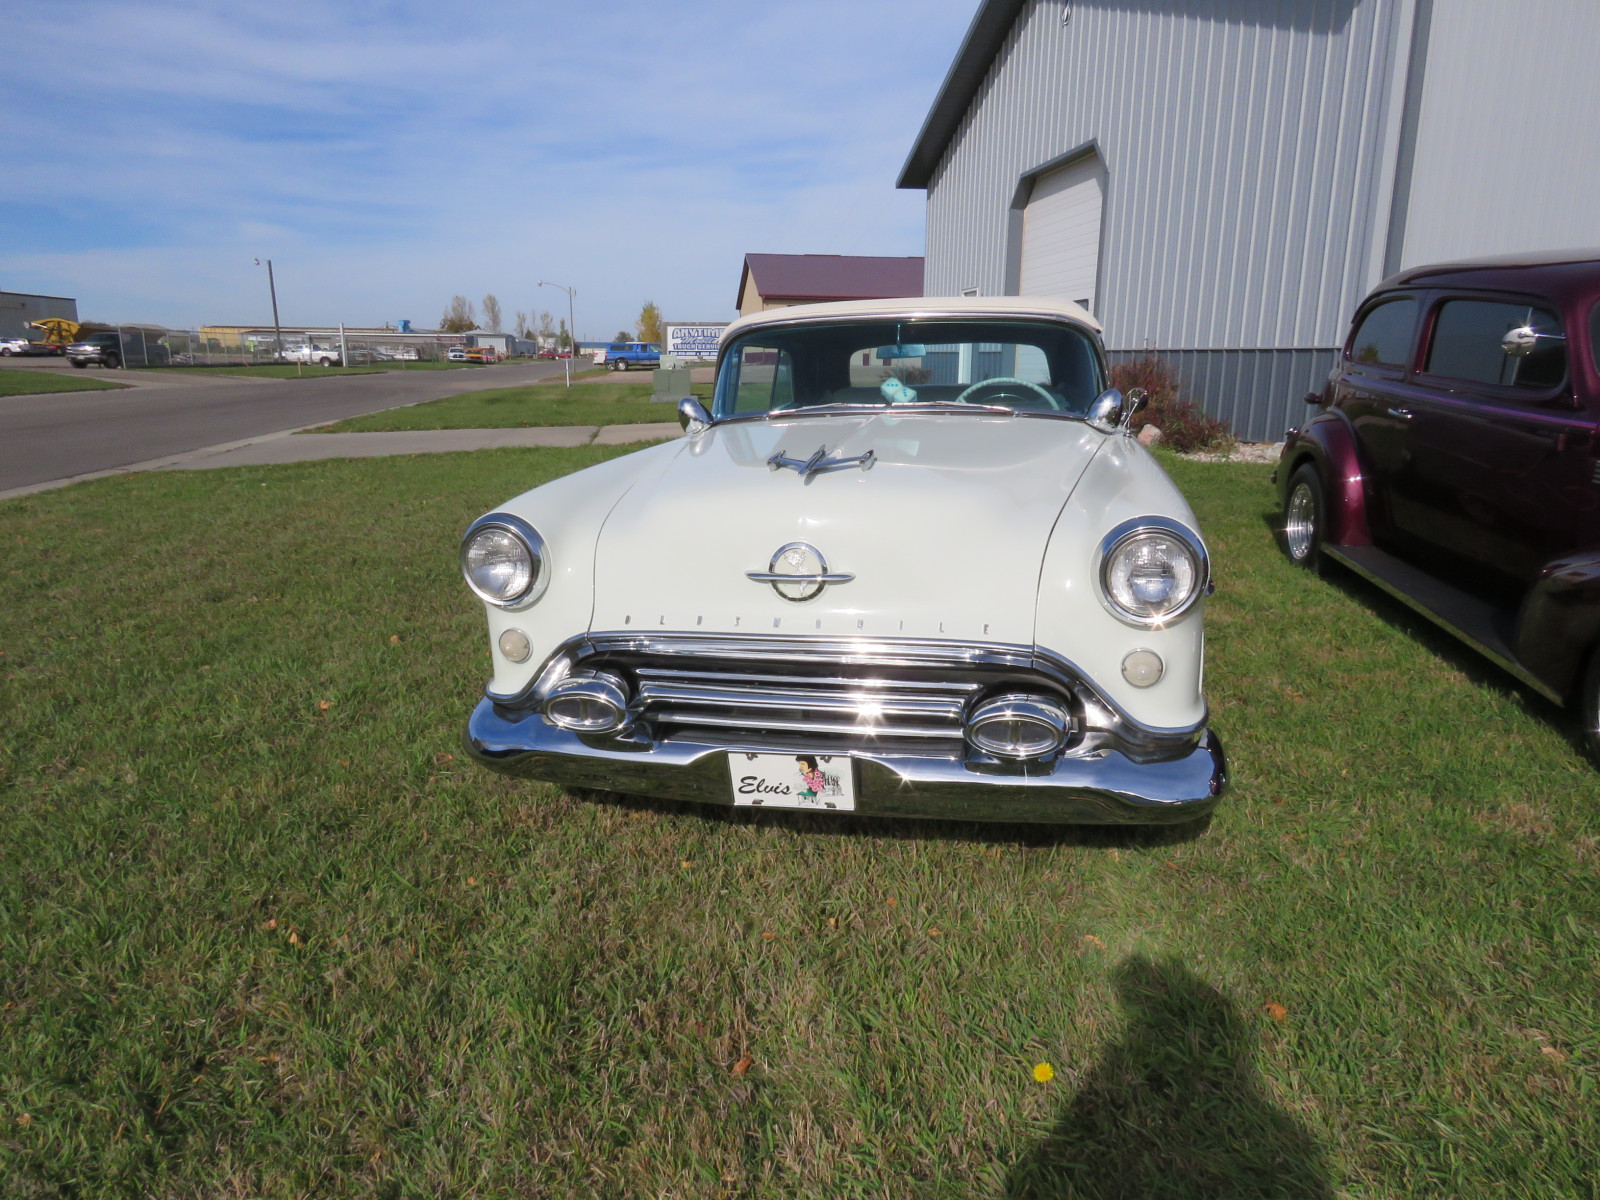 Rare 1954 Oldsmobile Super 88 Convertible - Image 2